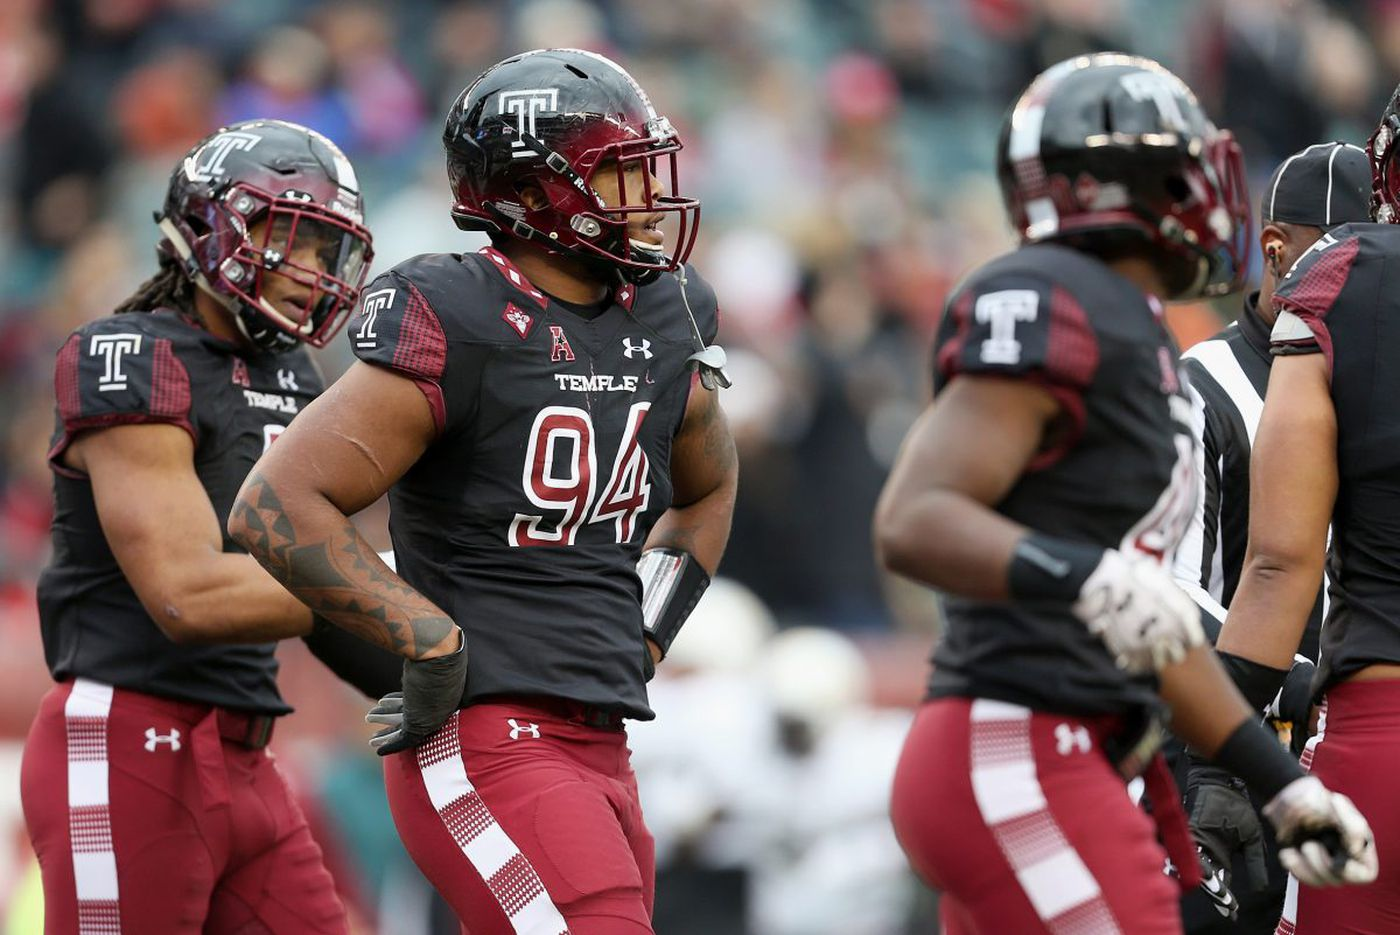 Temple's Jullian Taylor has a career performance in his home finale